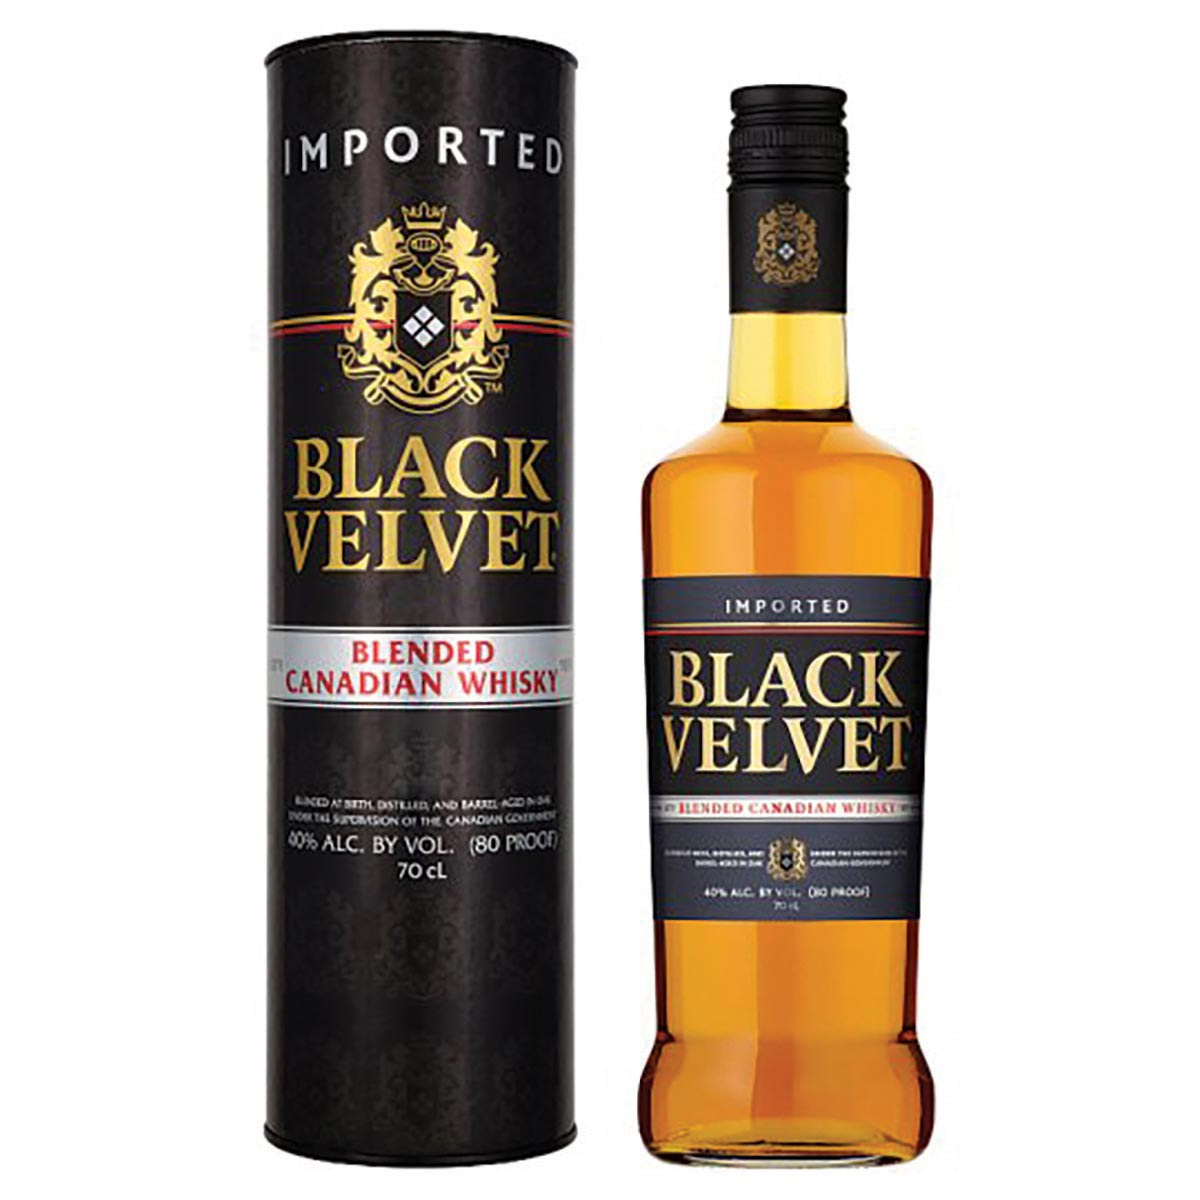 Heaven Hill Brands Buys Black Velvet Canadian Whisky